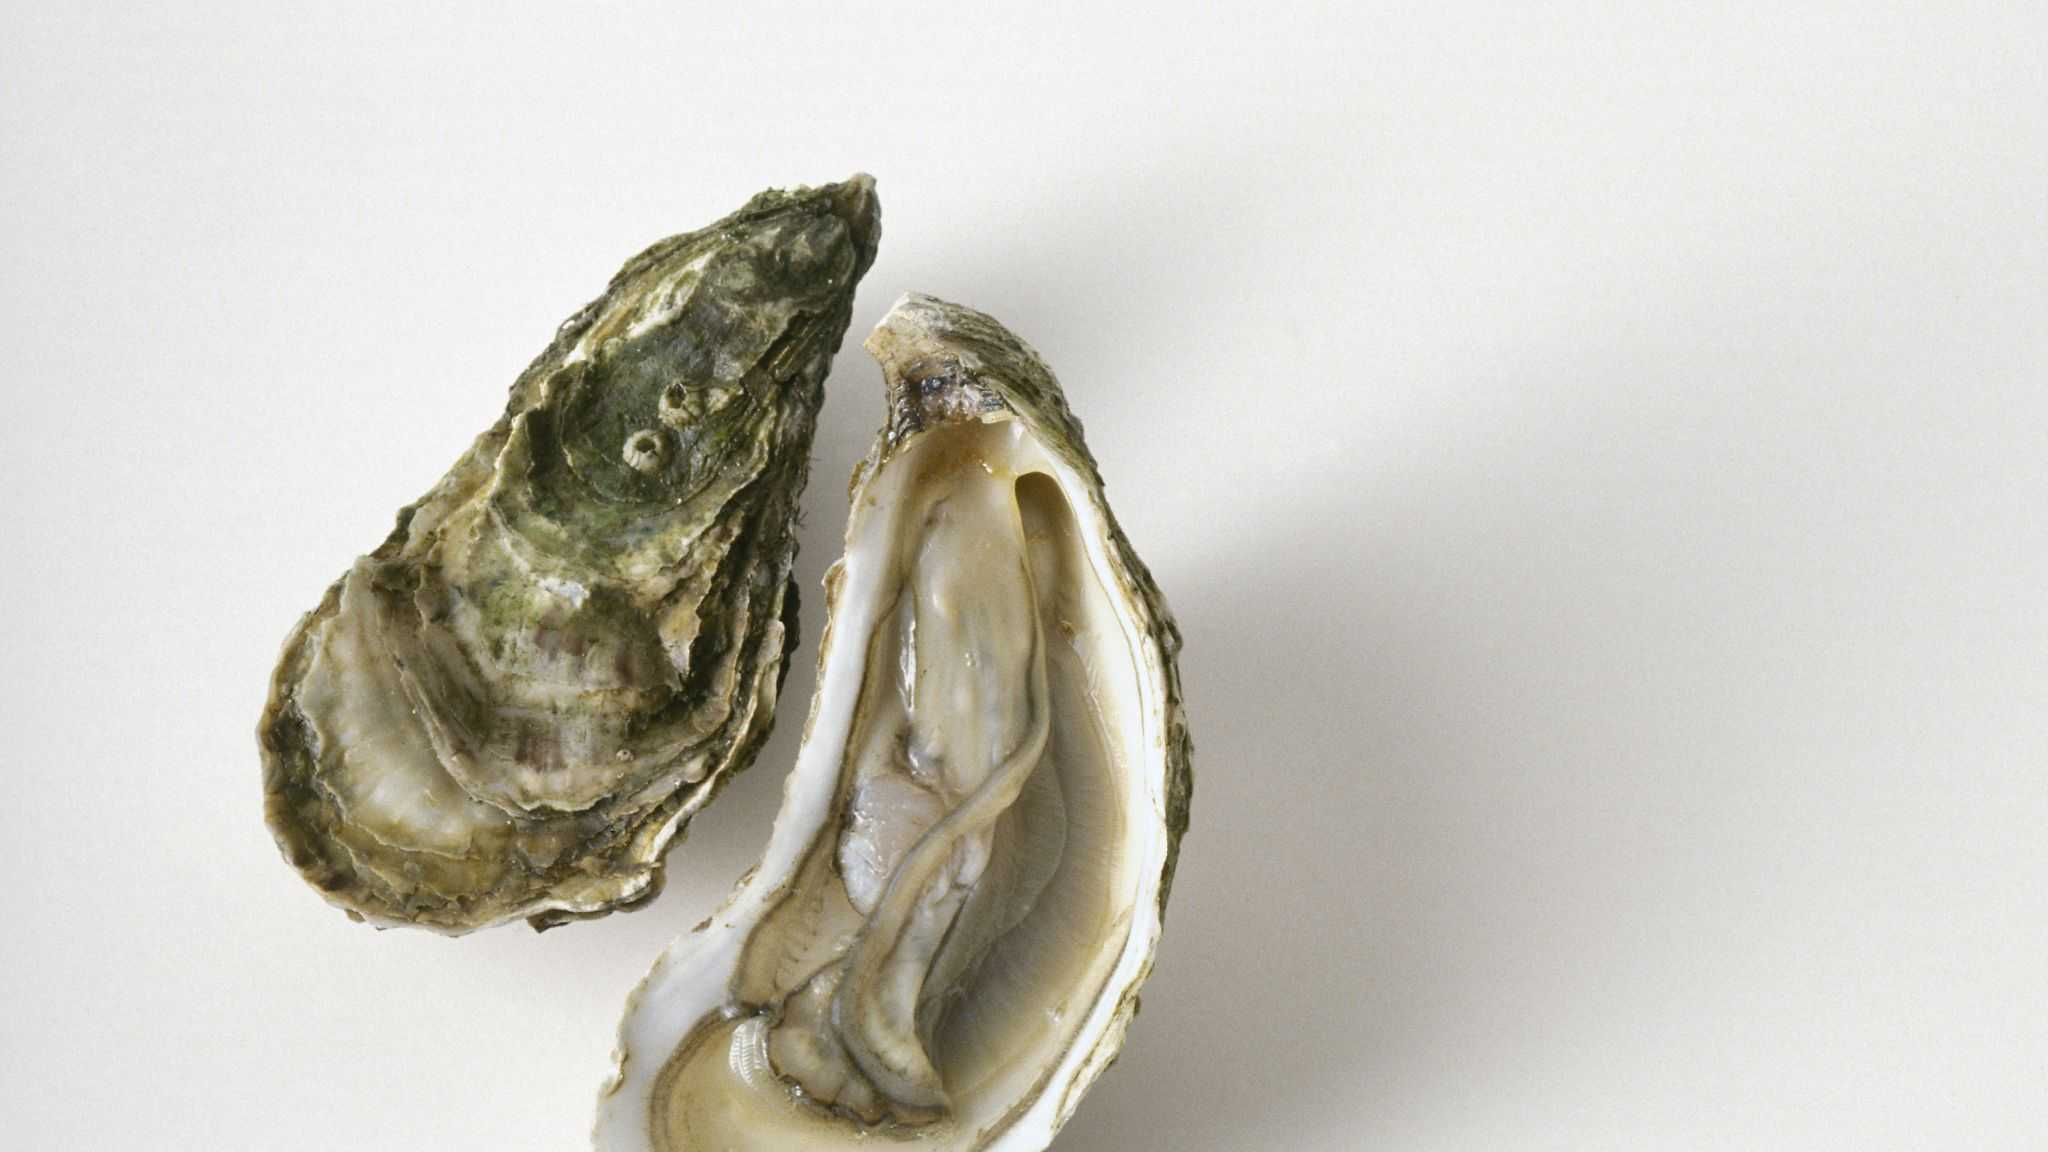 A 71-year-old man died after consuming flesh-eating bacteria on an oyster